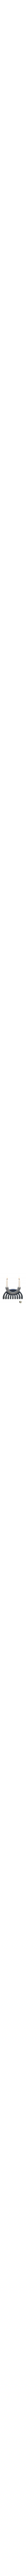 A colorful and fun Menorah with a multi-purpose twist – it's also a modern candle holder! A modern matte silver Menorah with funky arms features a removable colorful shamash